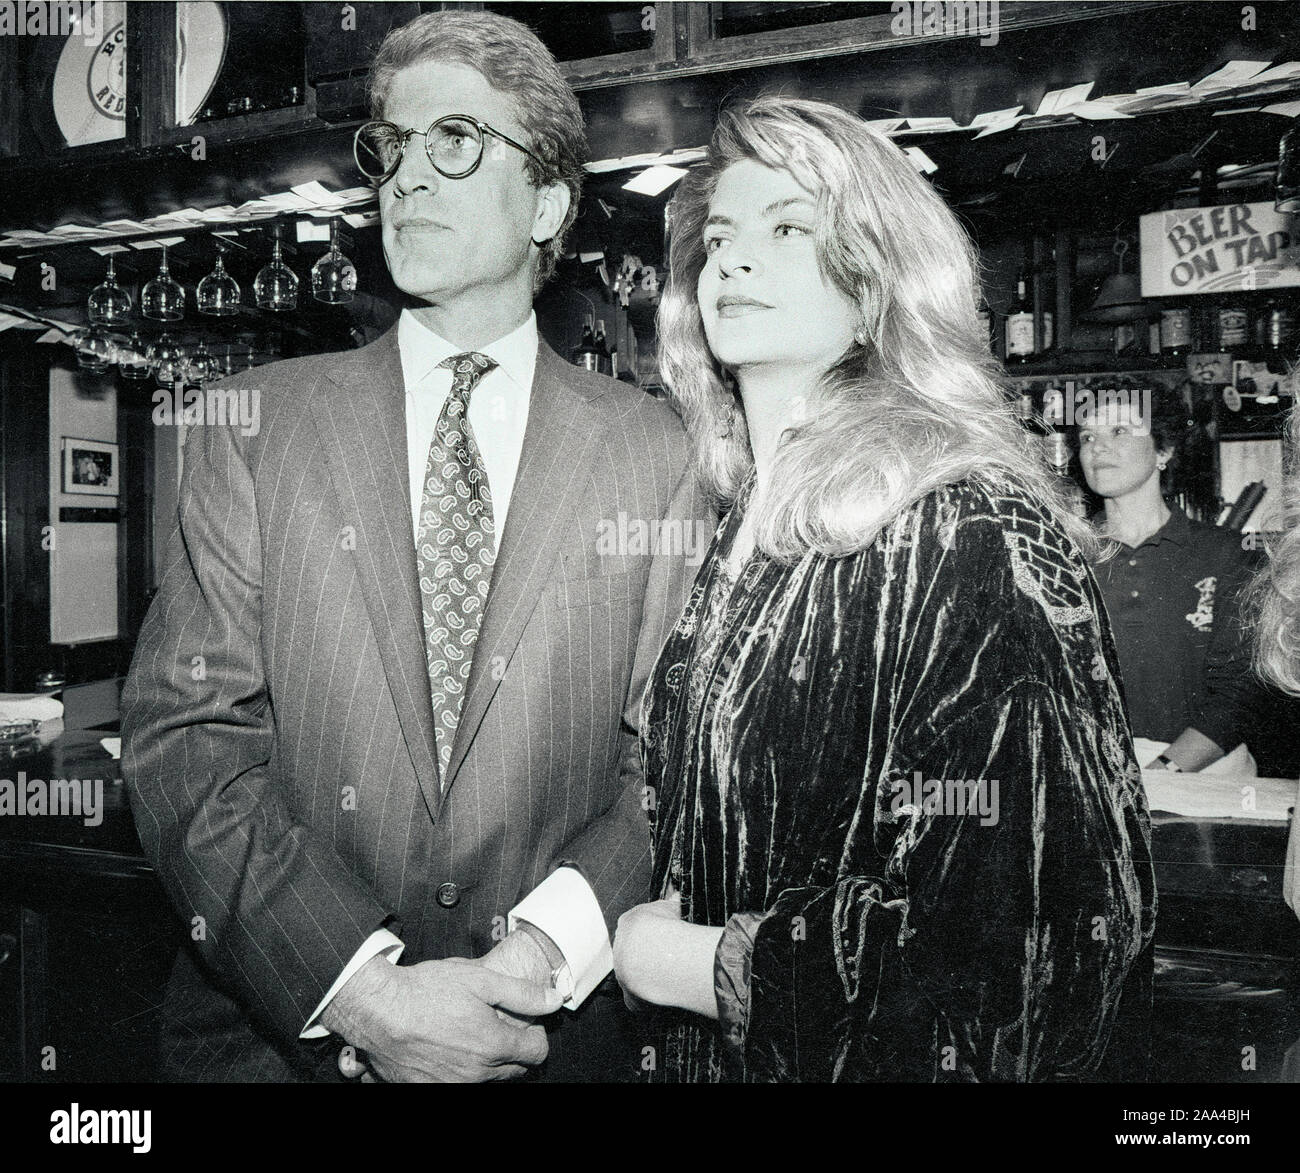 "Actors Ted Danson (left) and Kristie Alley (right) at the ""Cheers"" celebration at the BullFInch Pub in Boston Ma USA 1990's photo by bill belknap Stock Photo"